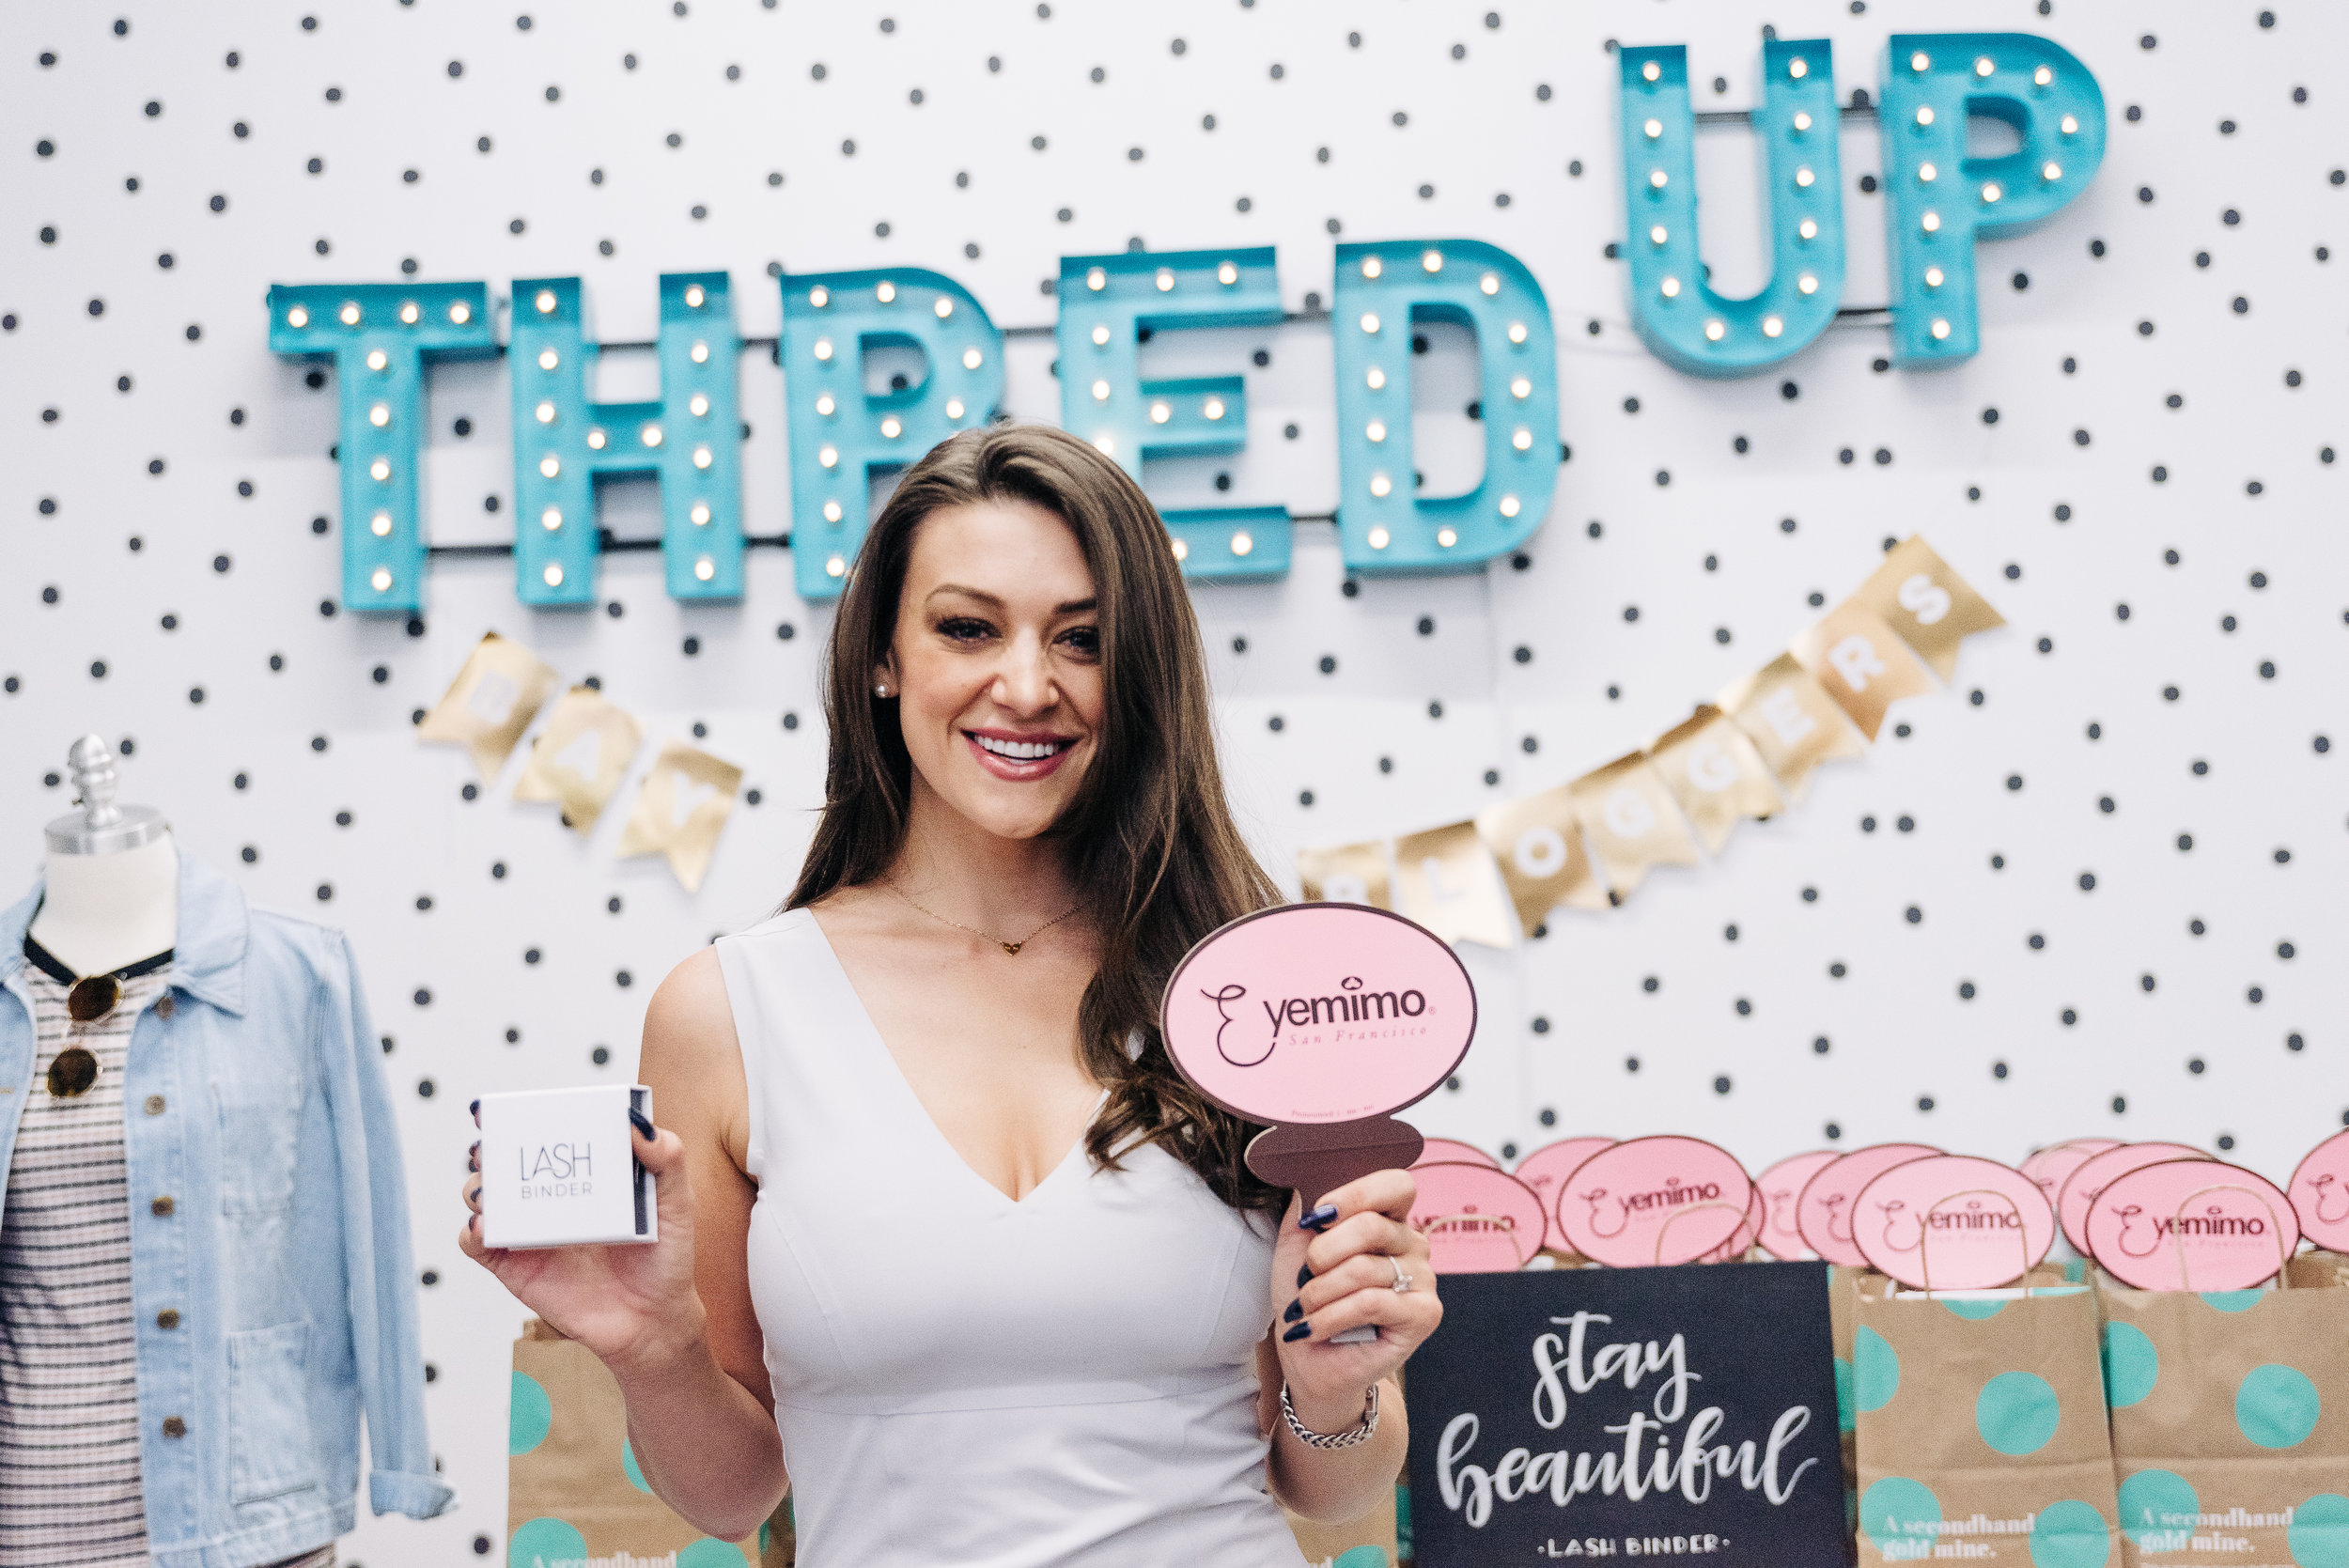 """Lash Binder had a fun """"Lash Bar"""" pop-up event with Eyemimo in Oakland at Thred-Up!"""